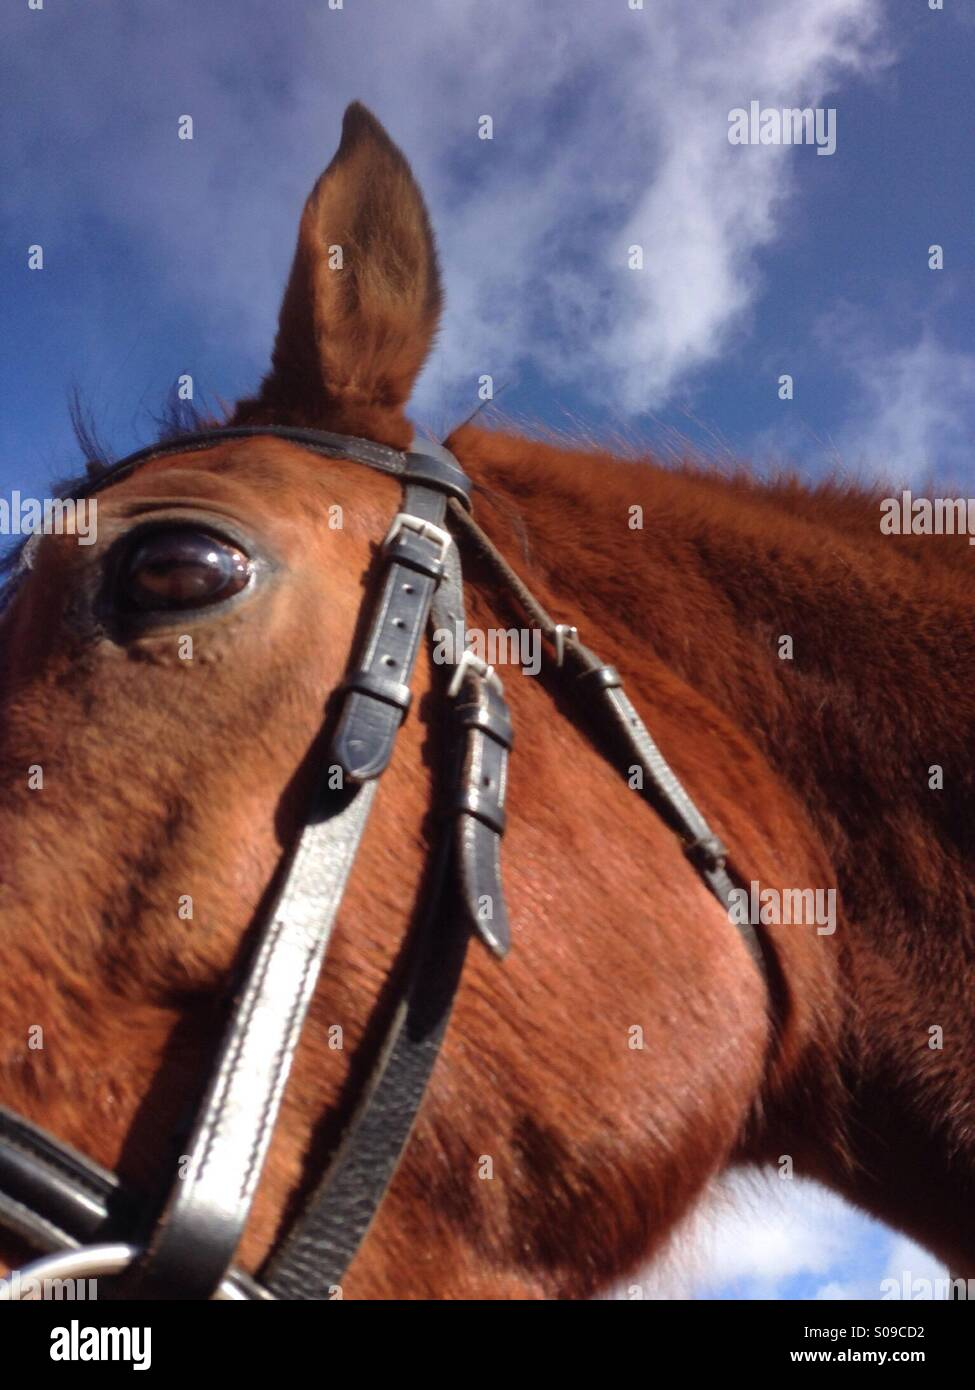 A horse, focus on eye - Stock Image